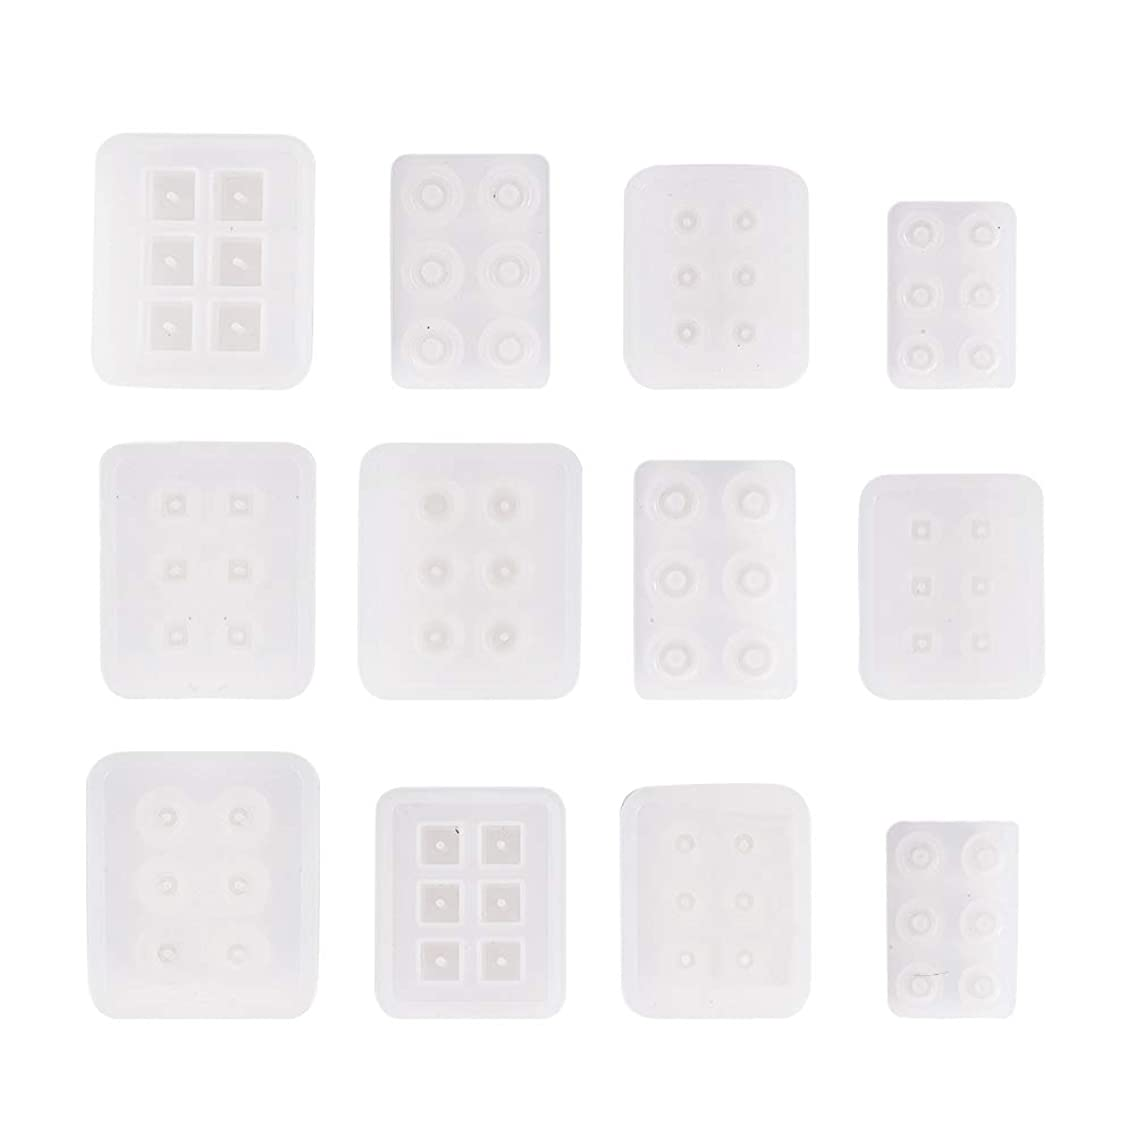 PH PandaHall 12 Pack Silicone Resin Molds with Hole for Resin, Clay, Gemstone Cabochon Beads Pendant Charms Jewelry Casting(Cube, Round, Square, Abacus, Oval, Rhombus) etfdpdx18